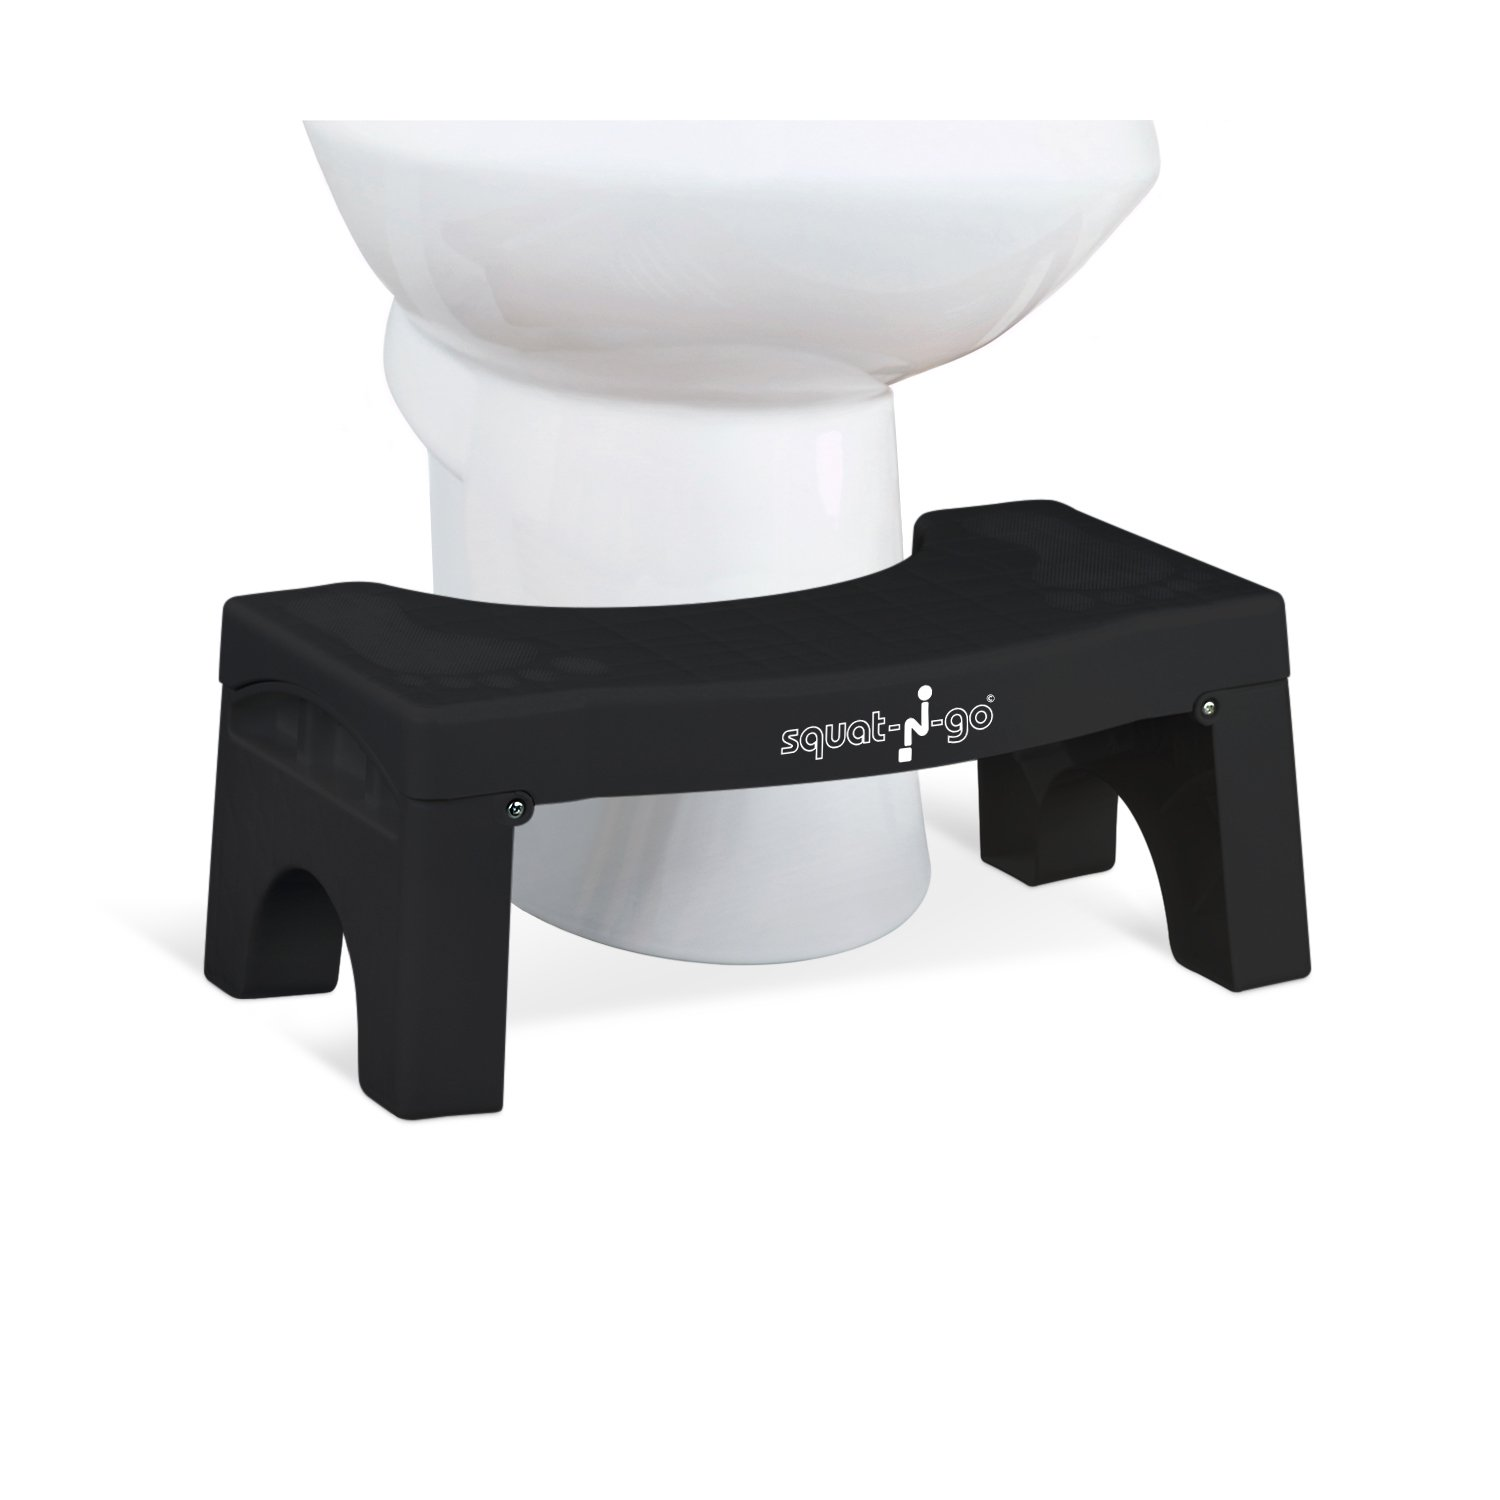 Does coffee help you go to the bathroom - Amazon Com Squat N Go 7 Folding Squatting Stool The Only Foldable Toilet Stool Convenient And Compact Great For Travel Fits All Toilets